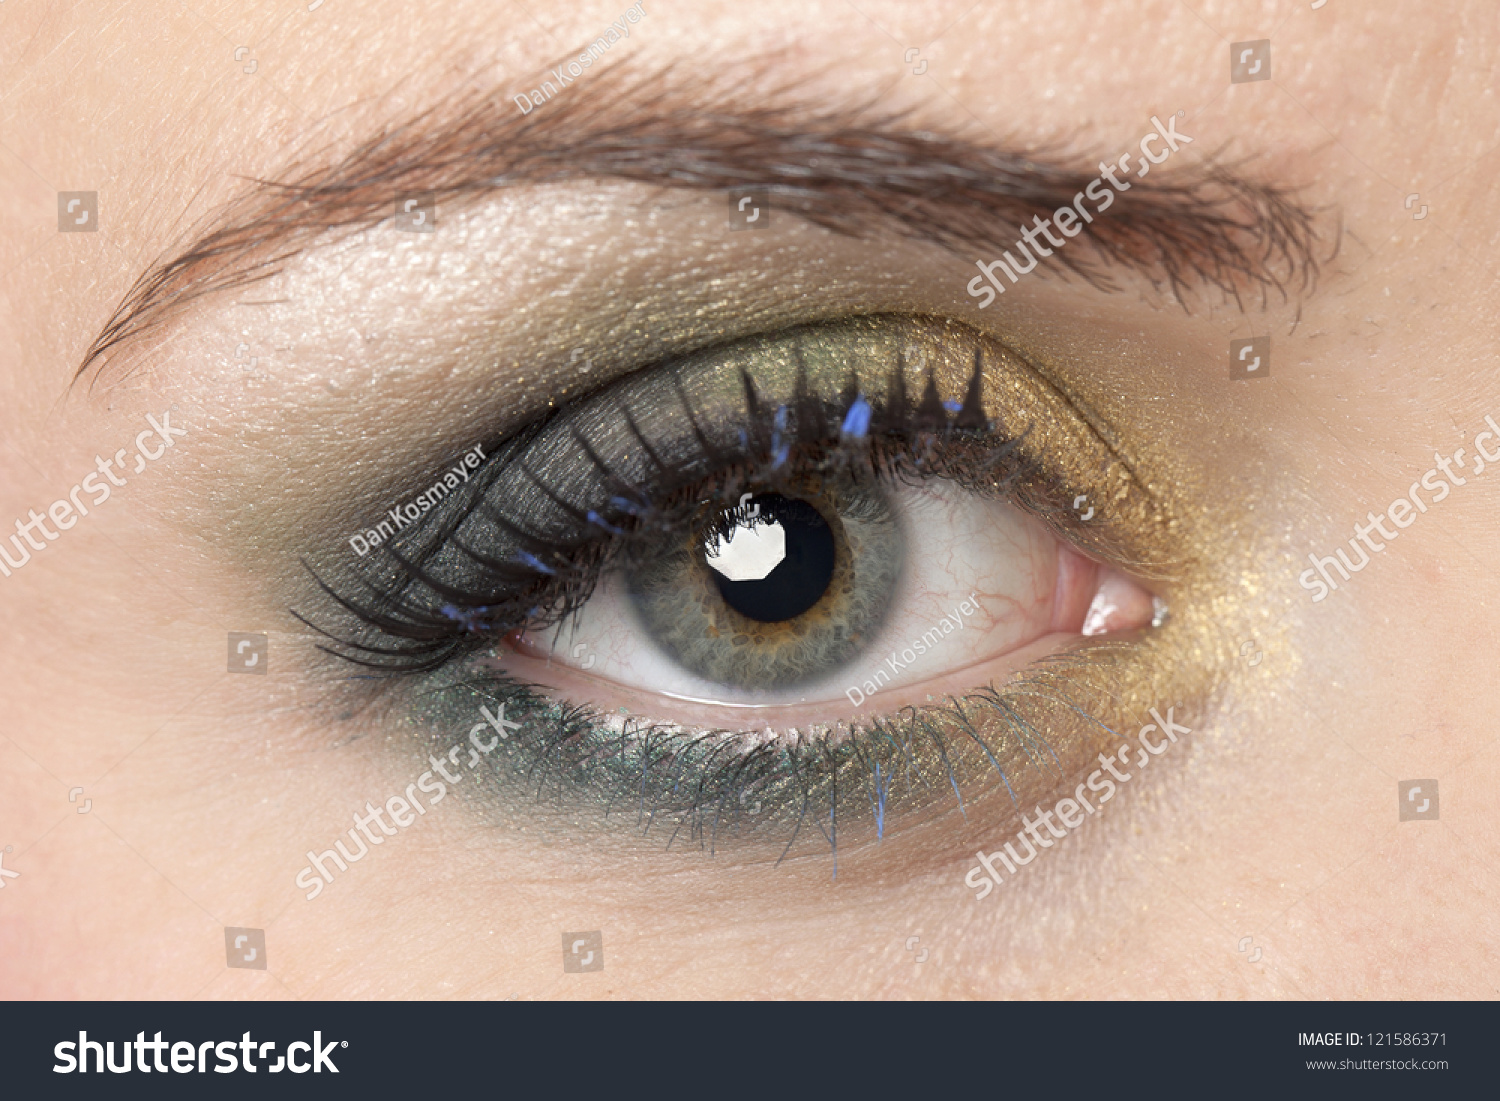 Image Of A Woman With The Camera Focused On Her Eye Make ...